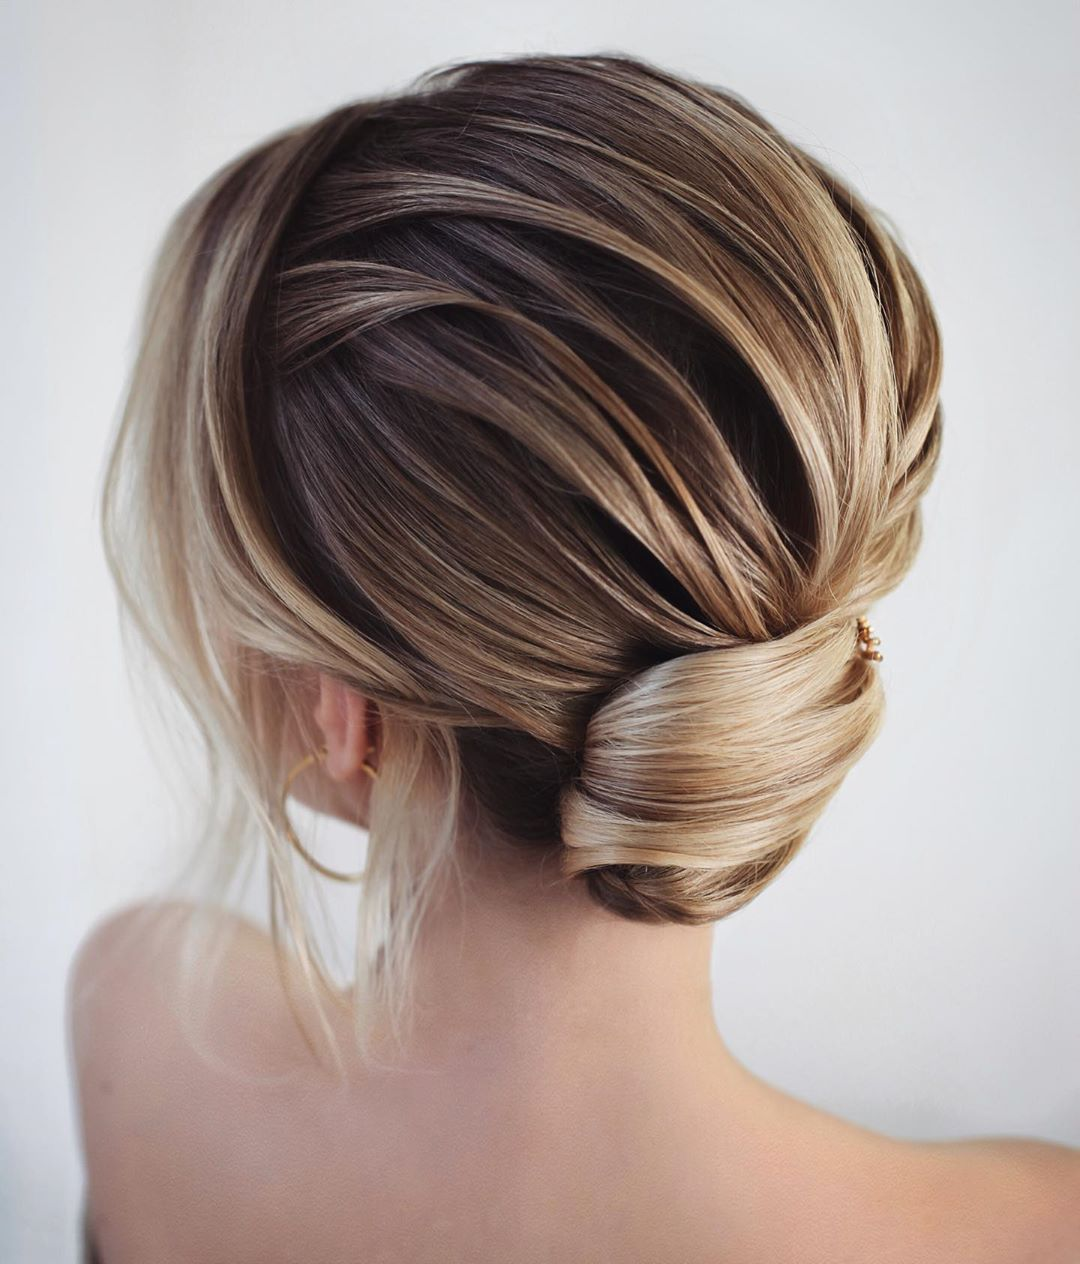 Sophisticated Short Hair Nape Bun with a Fringe